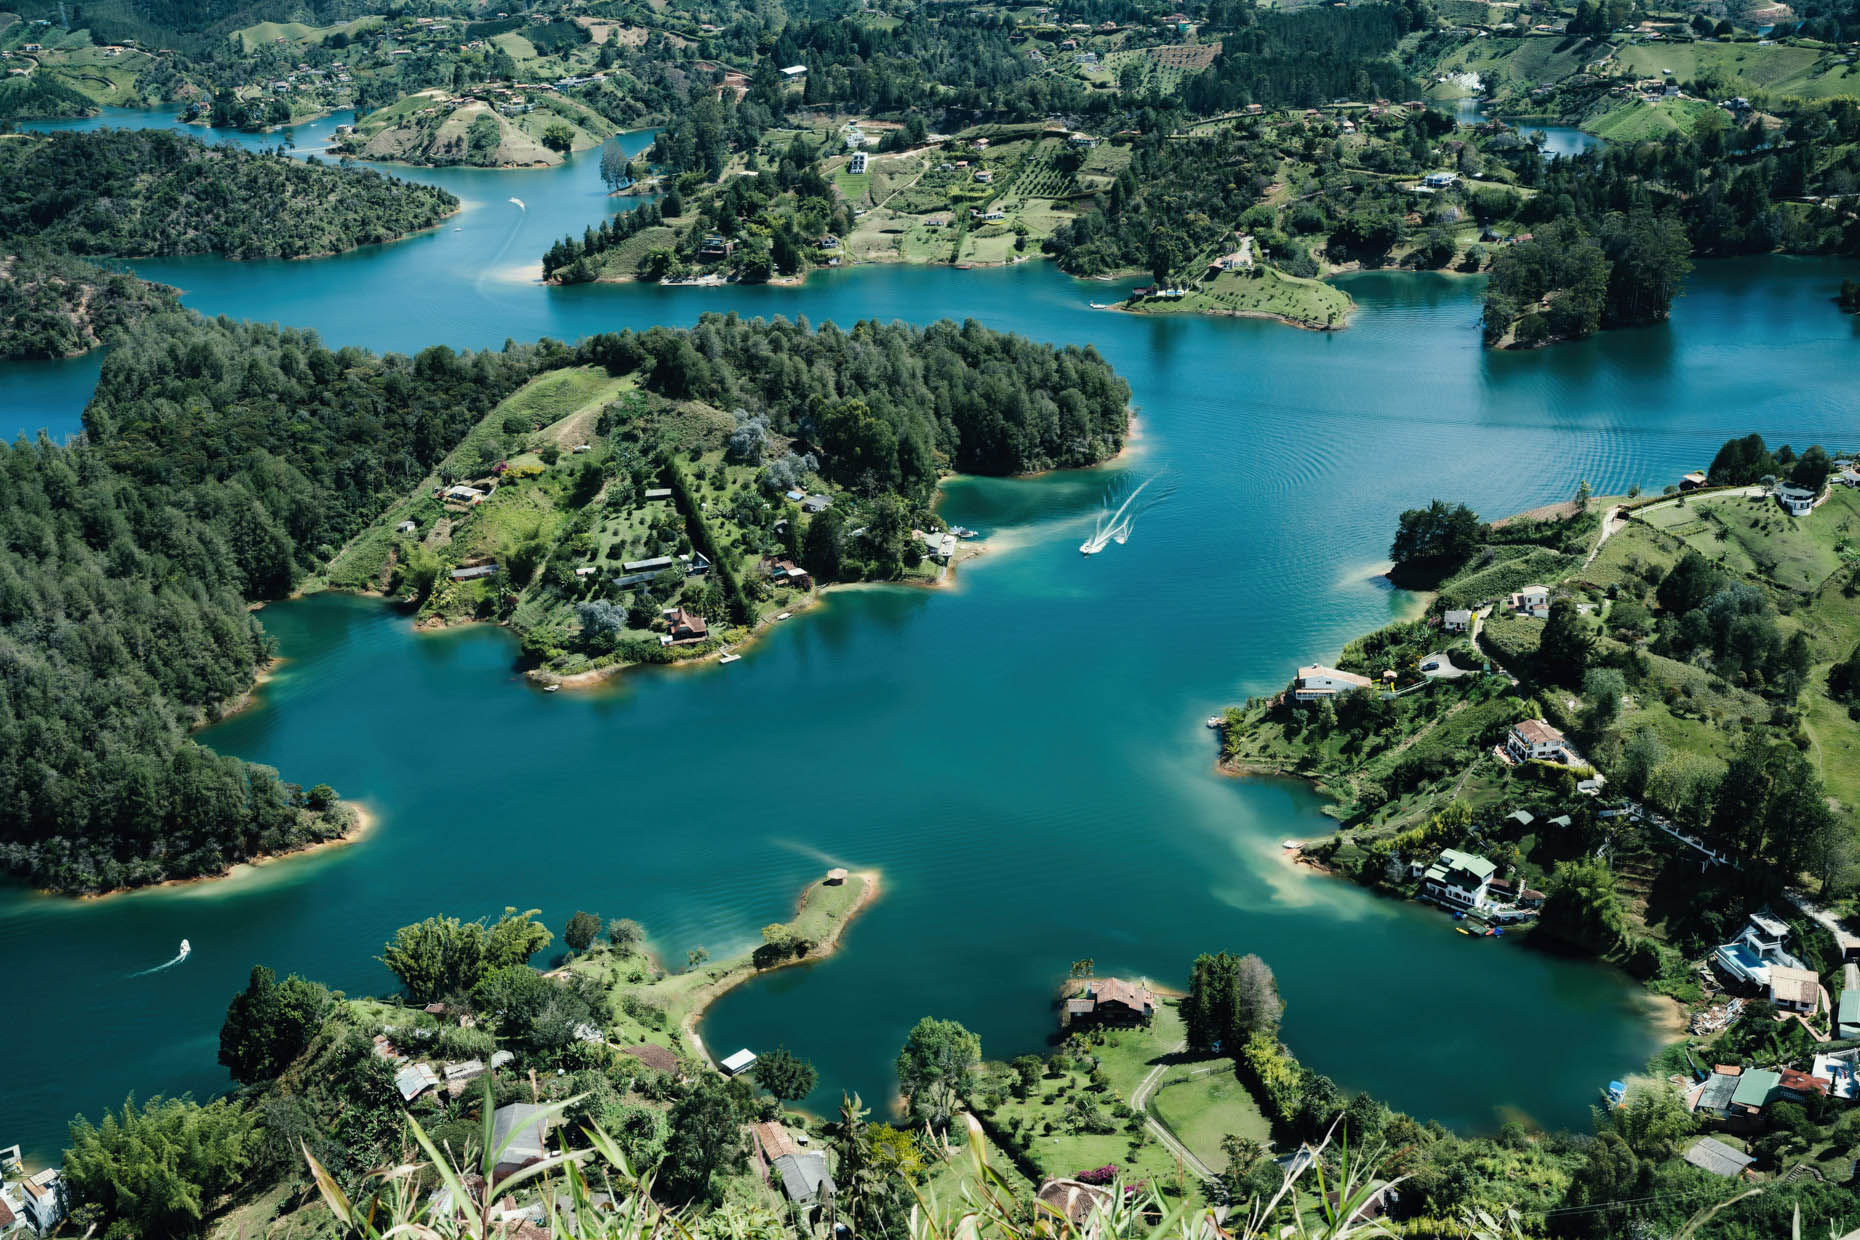 Inti St Clair overhead view of Andean mountains and lakes in Antioquia Colombia